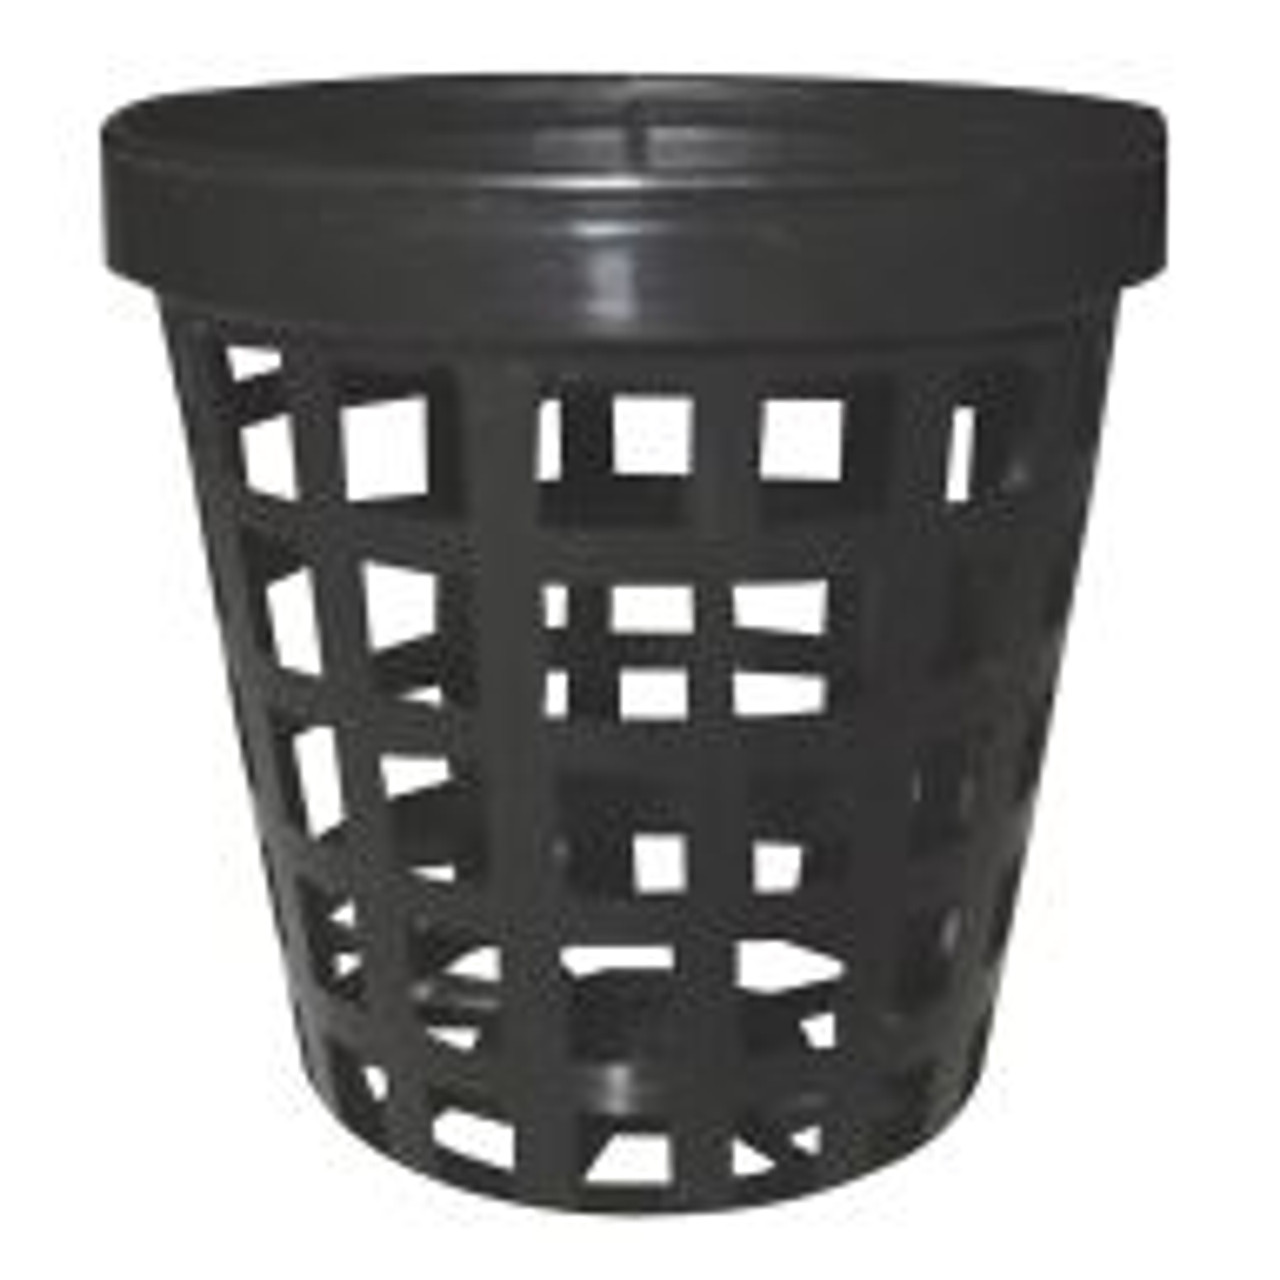 These Net Cups are compatible with several existing systems and are also great choices for gardeners customizing their own hydroponic setups.